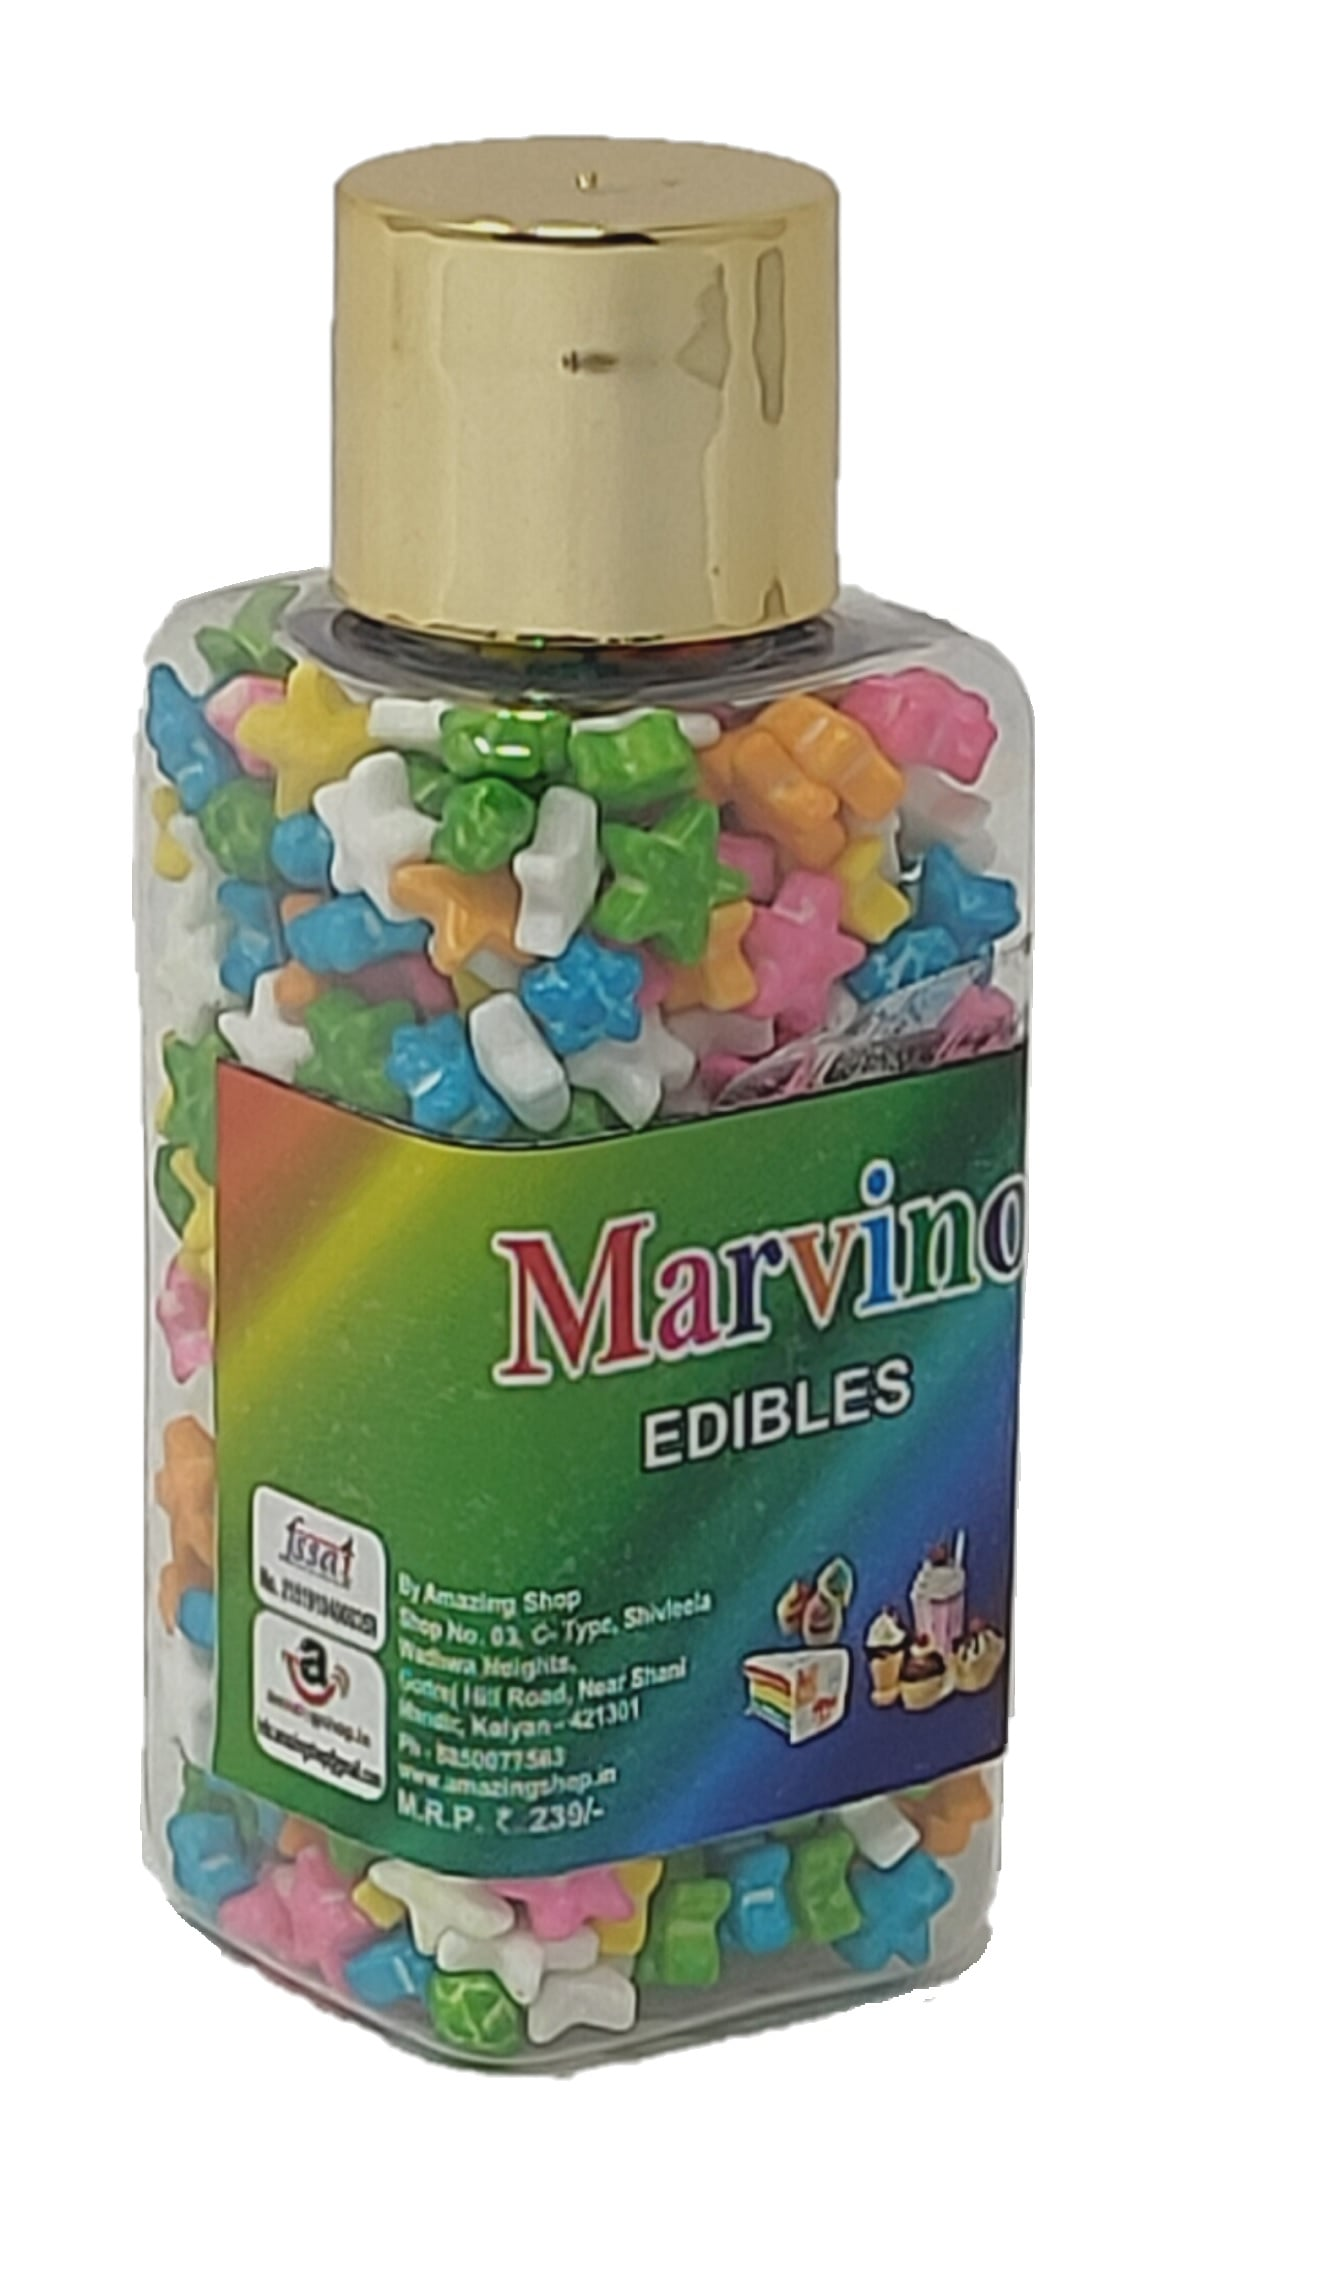 Marvino Edibles Cake And Pastries Decoration (Multi Colored Stars)